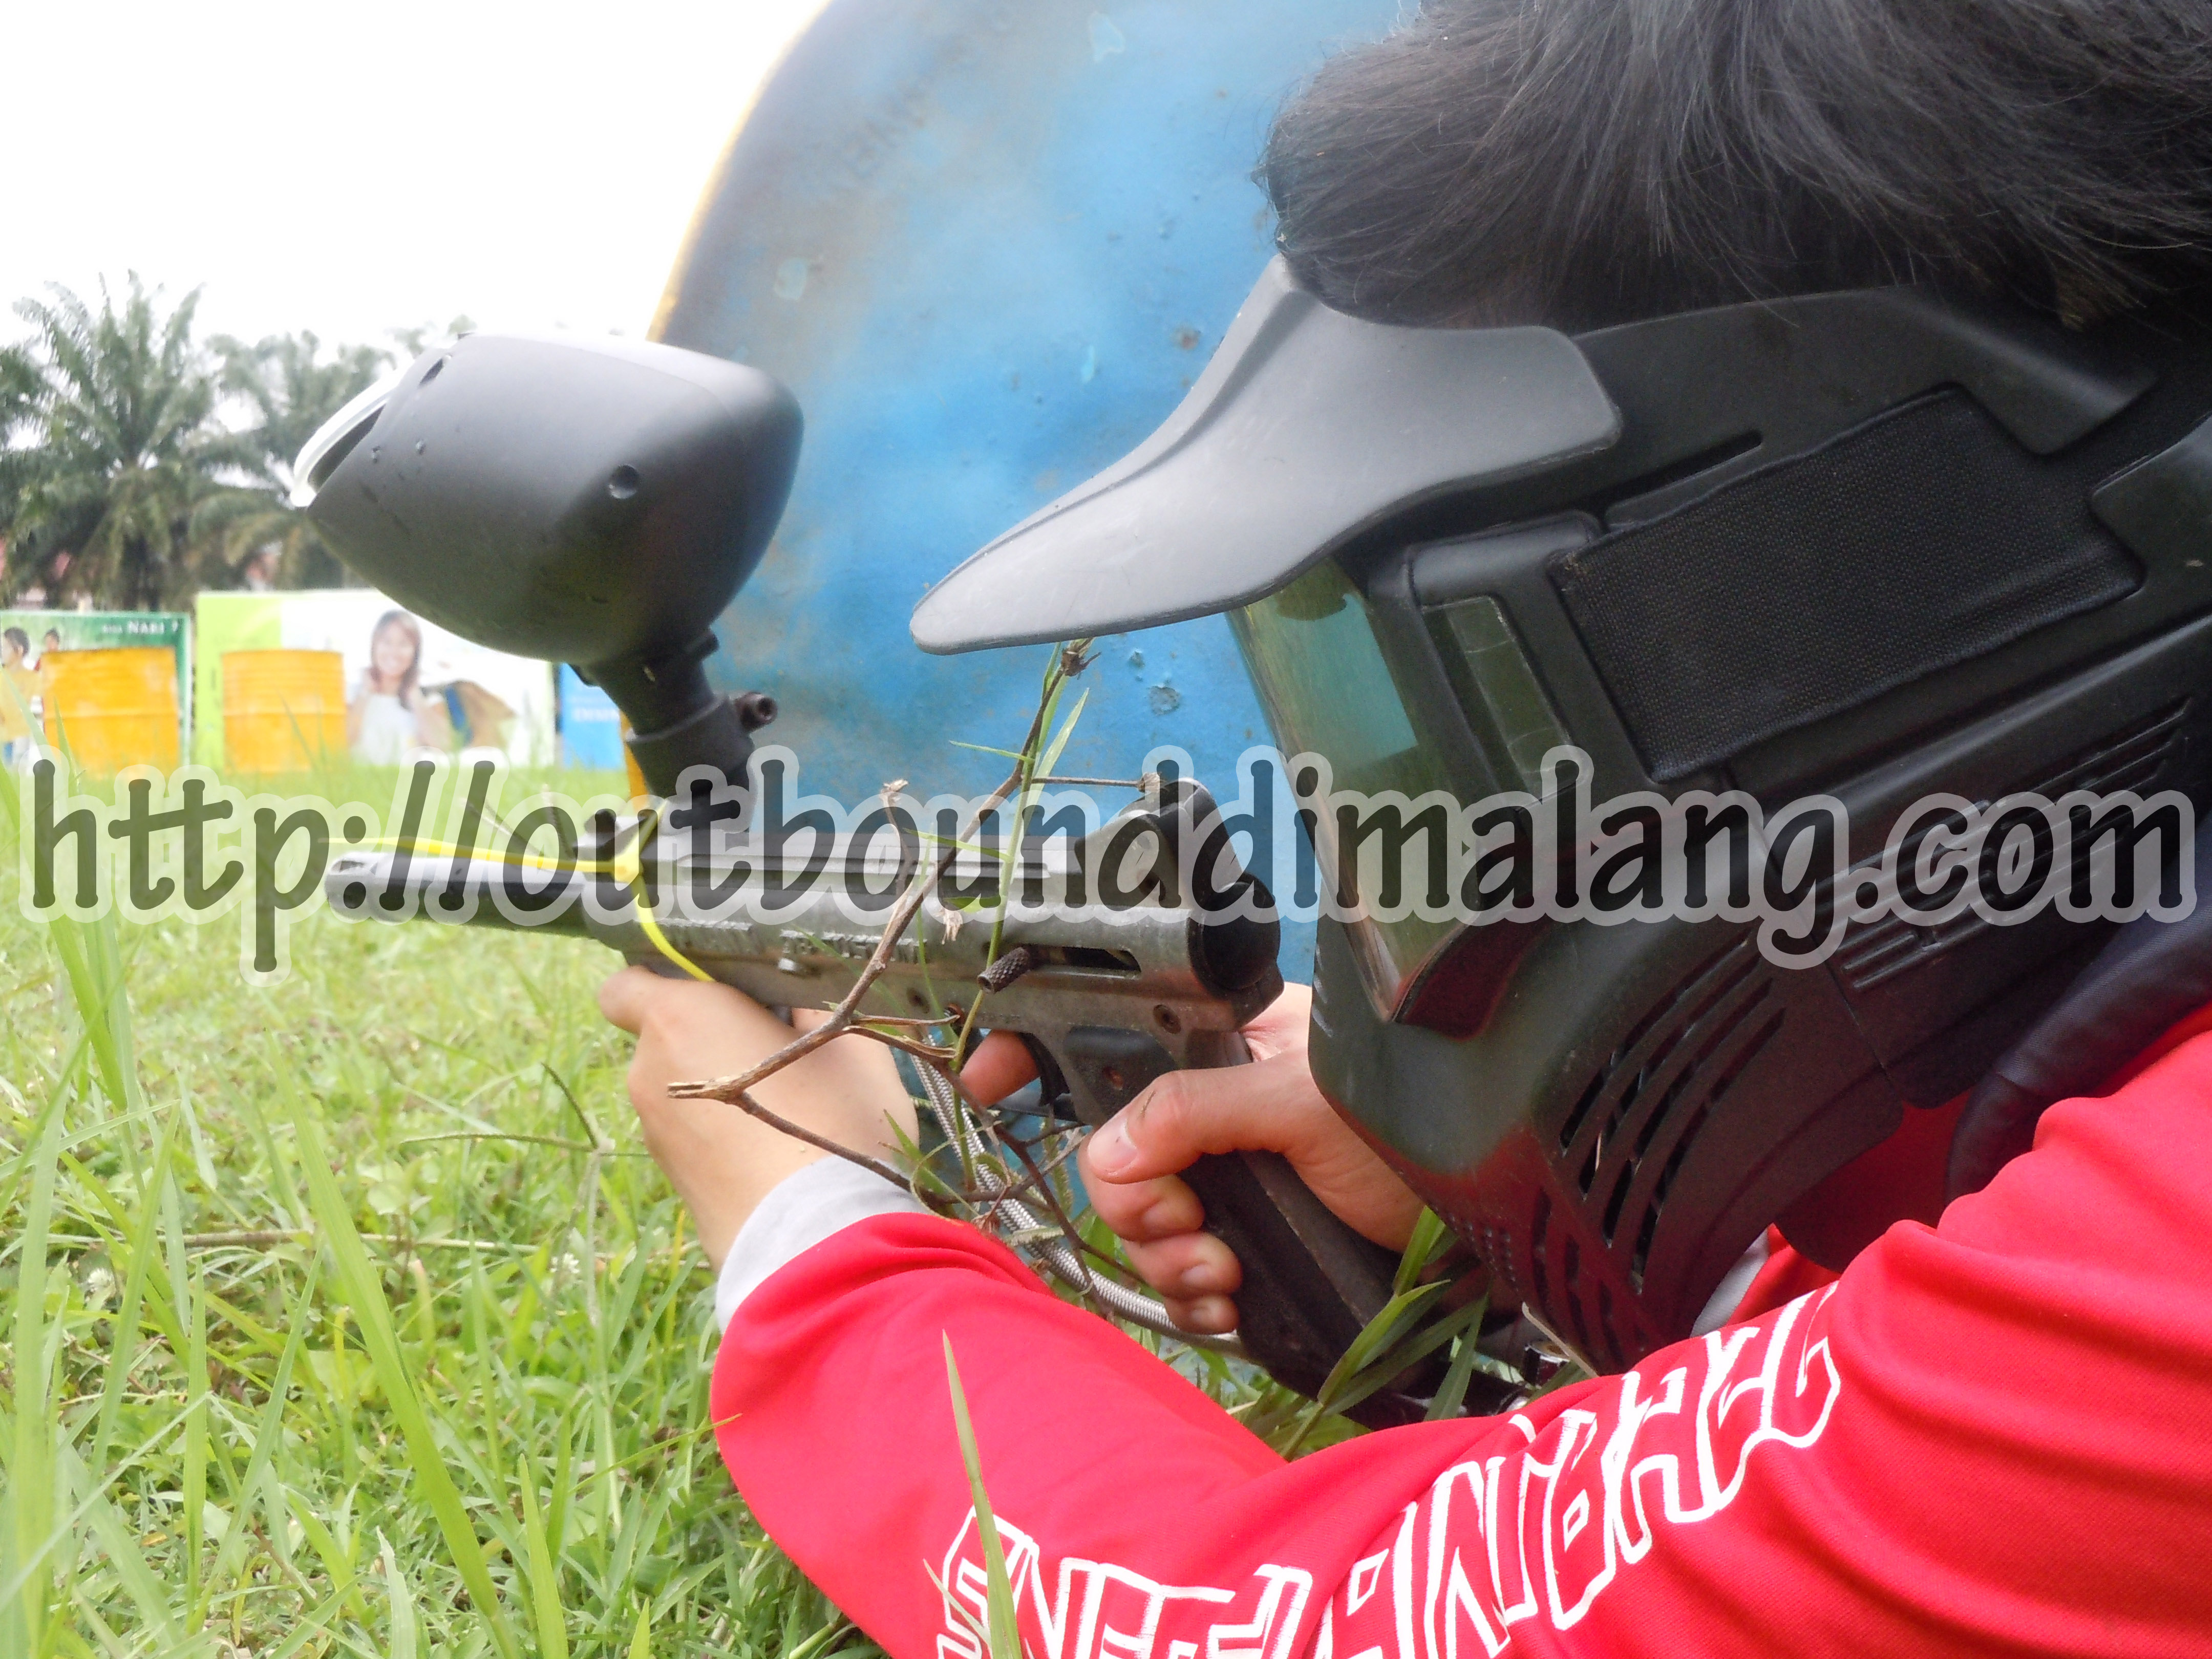 Outbound di Malang – Serunya Permainan Paintball di malang